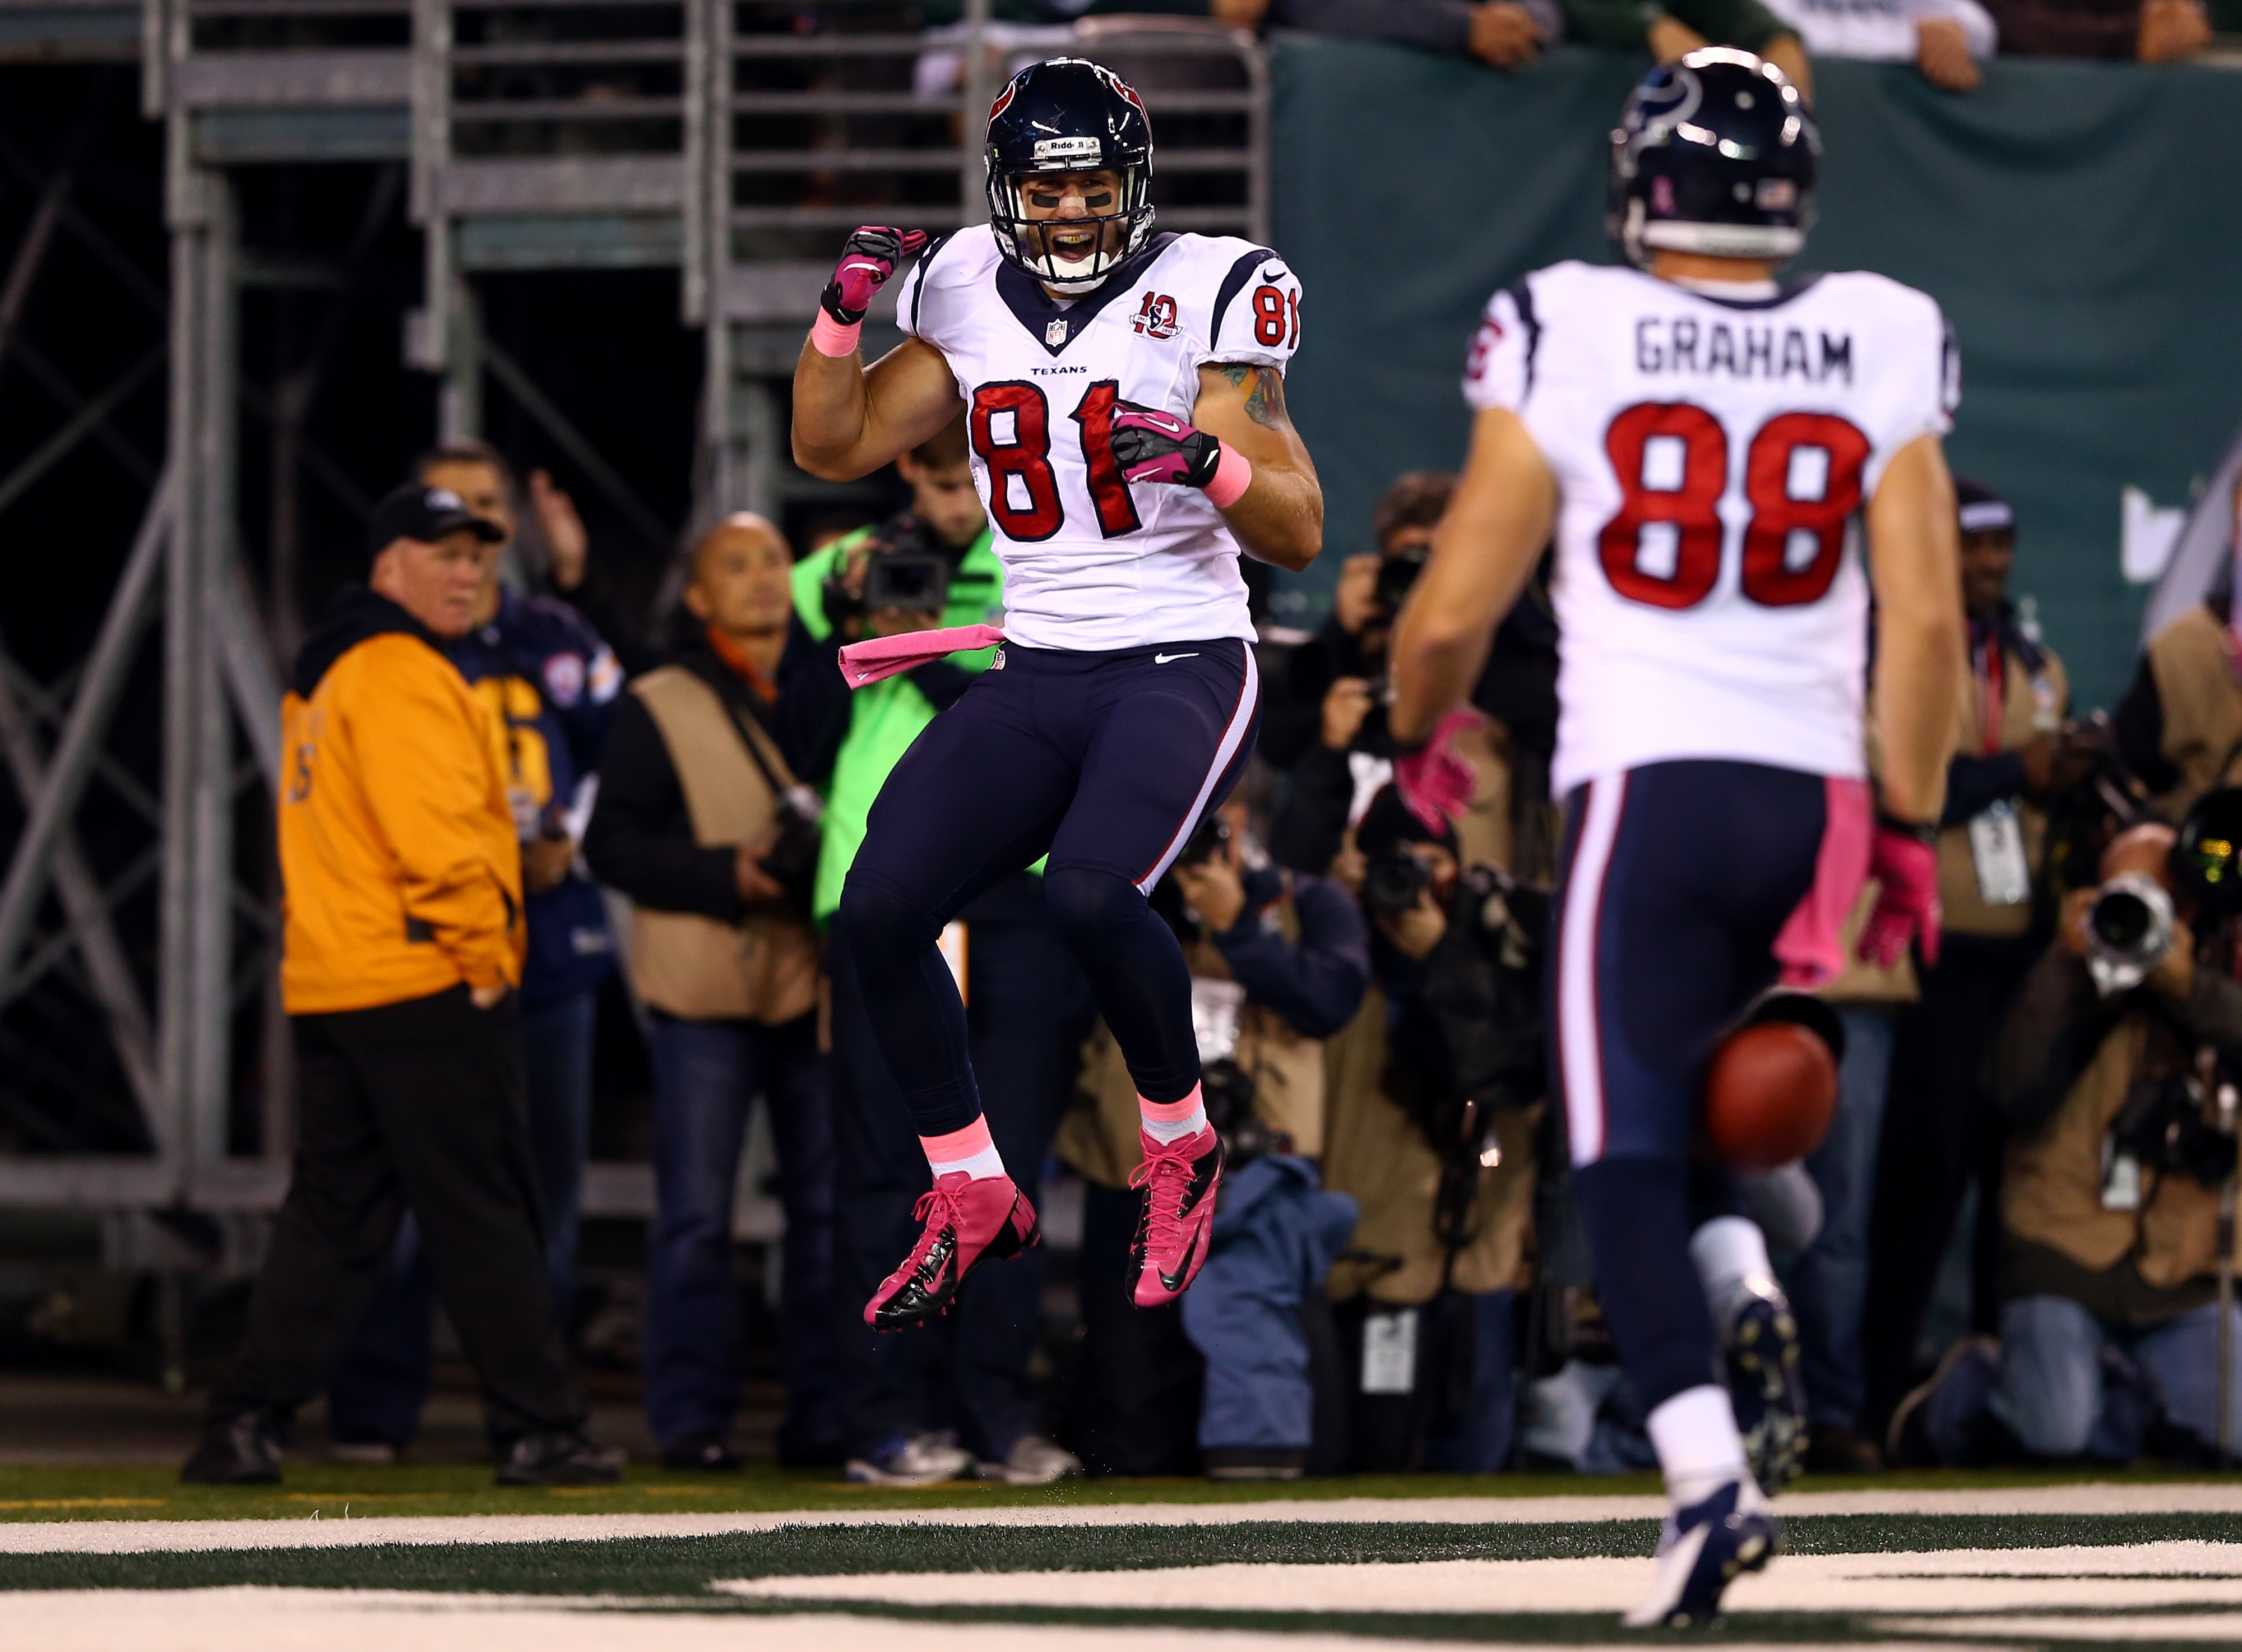 We're all jumping for joy that Houston Texans football is back, Owen.